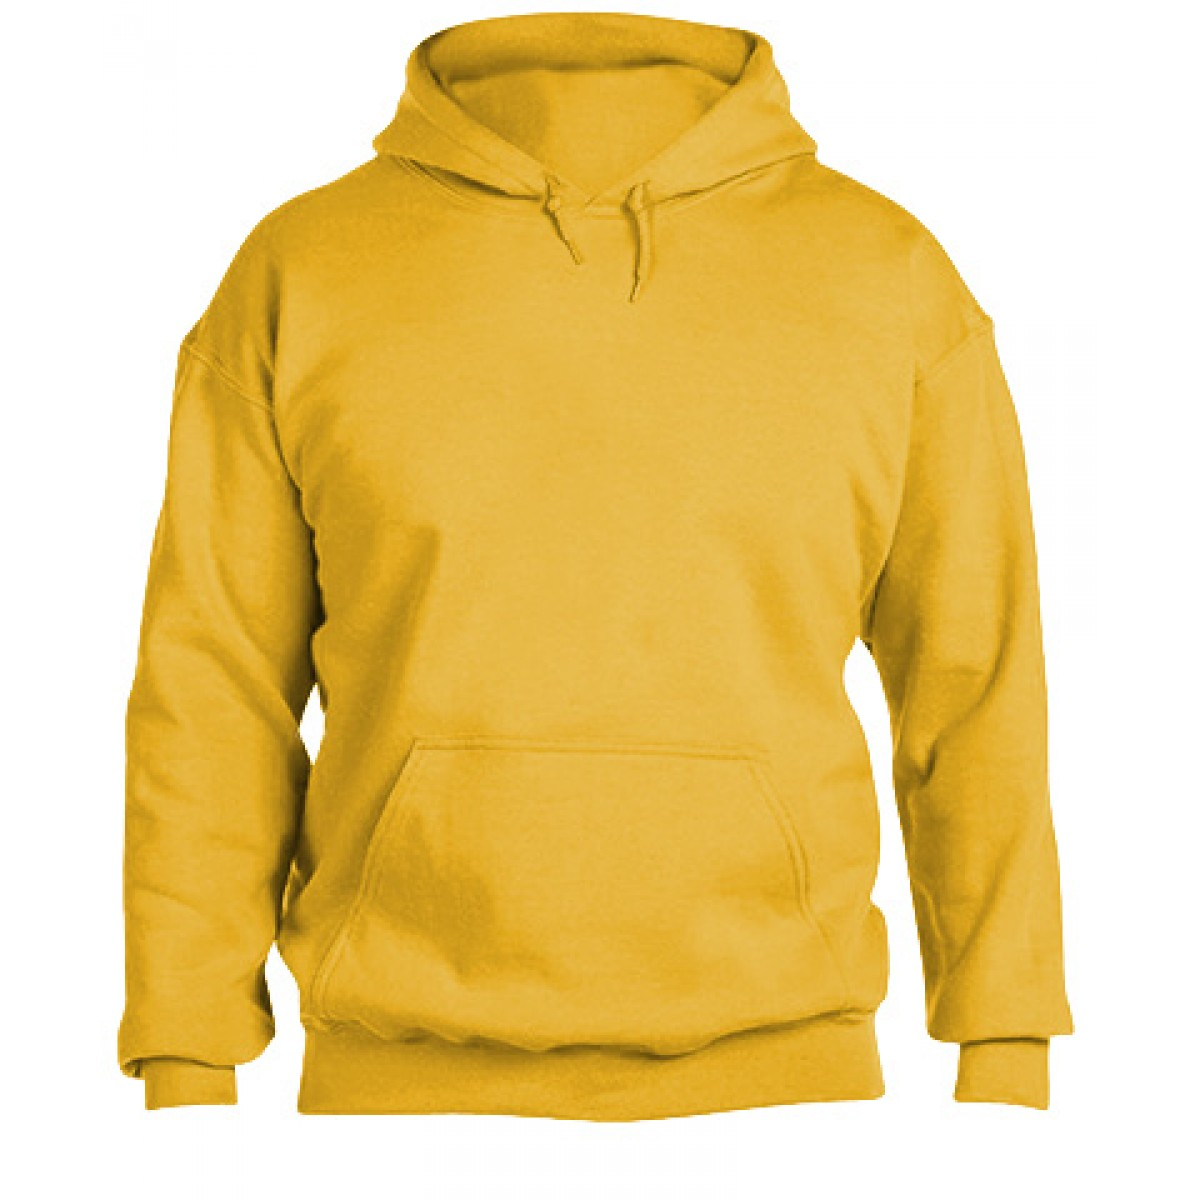 Hooded Sweatshirt 50/50 Heavy Blend -Gold-M